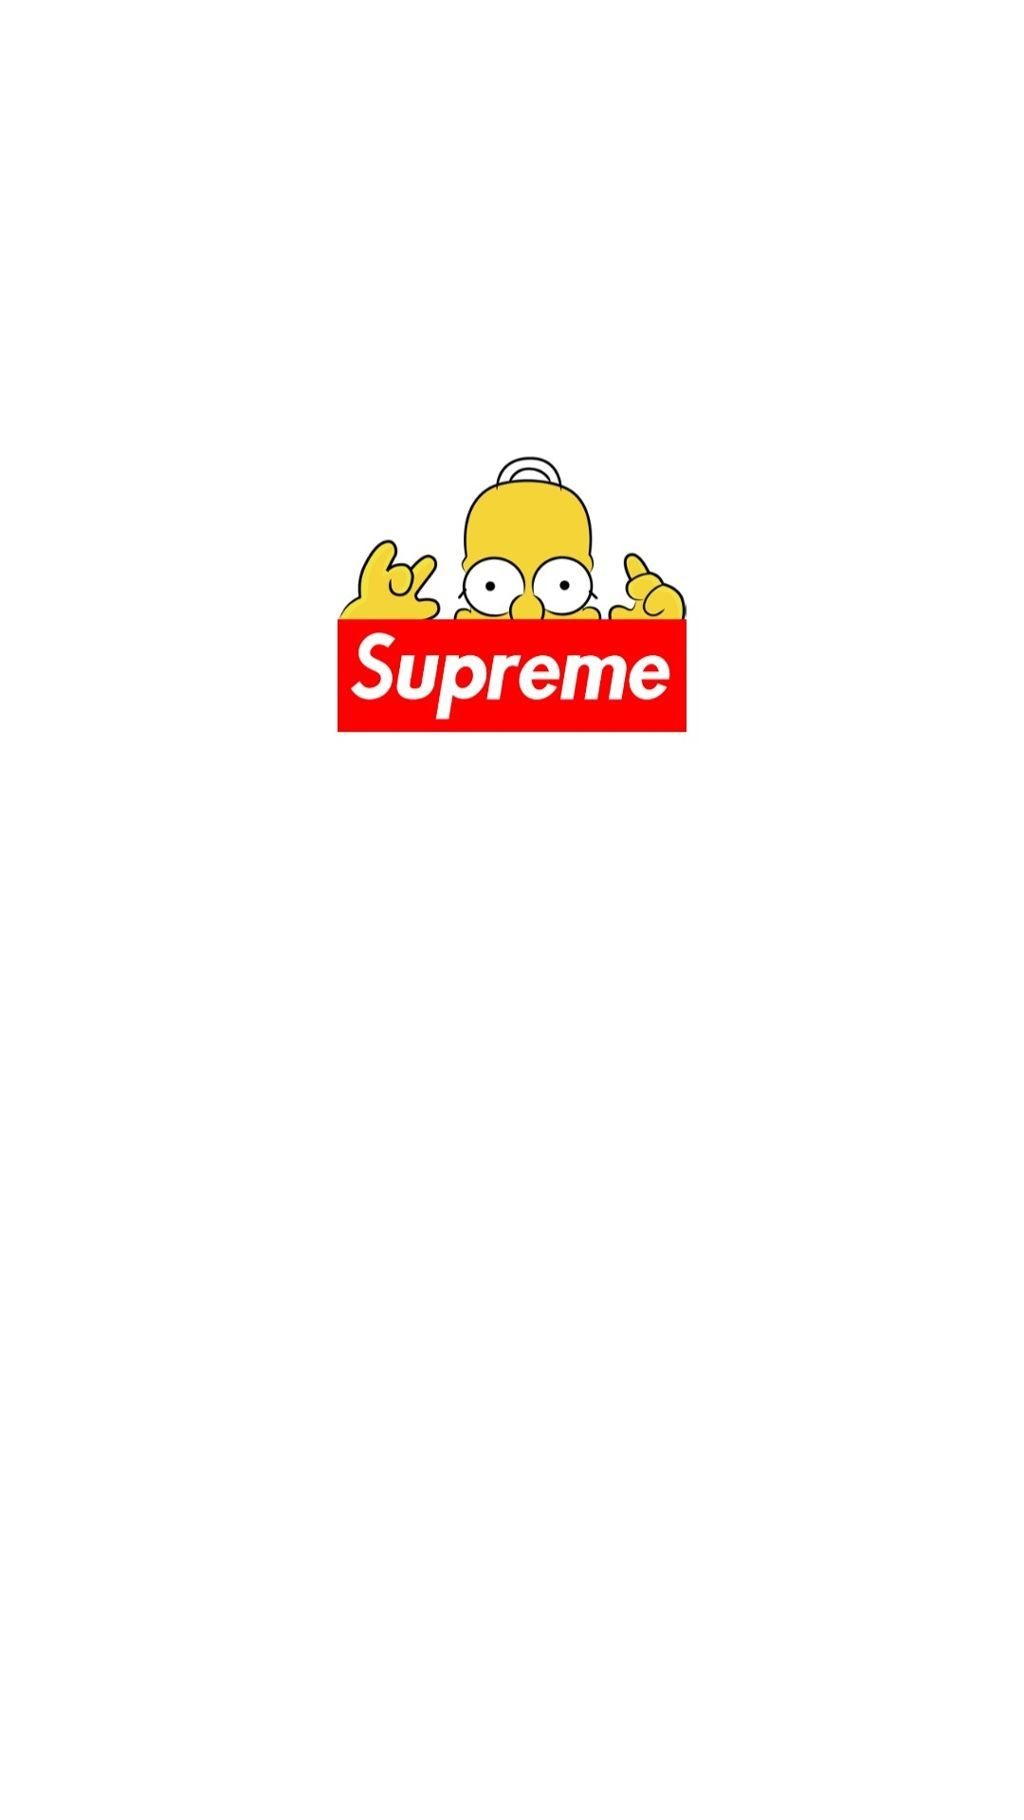 1024x1820 wallpaper simpsons supreme - Image by Min Sae Yeon